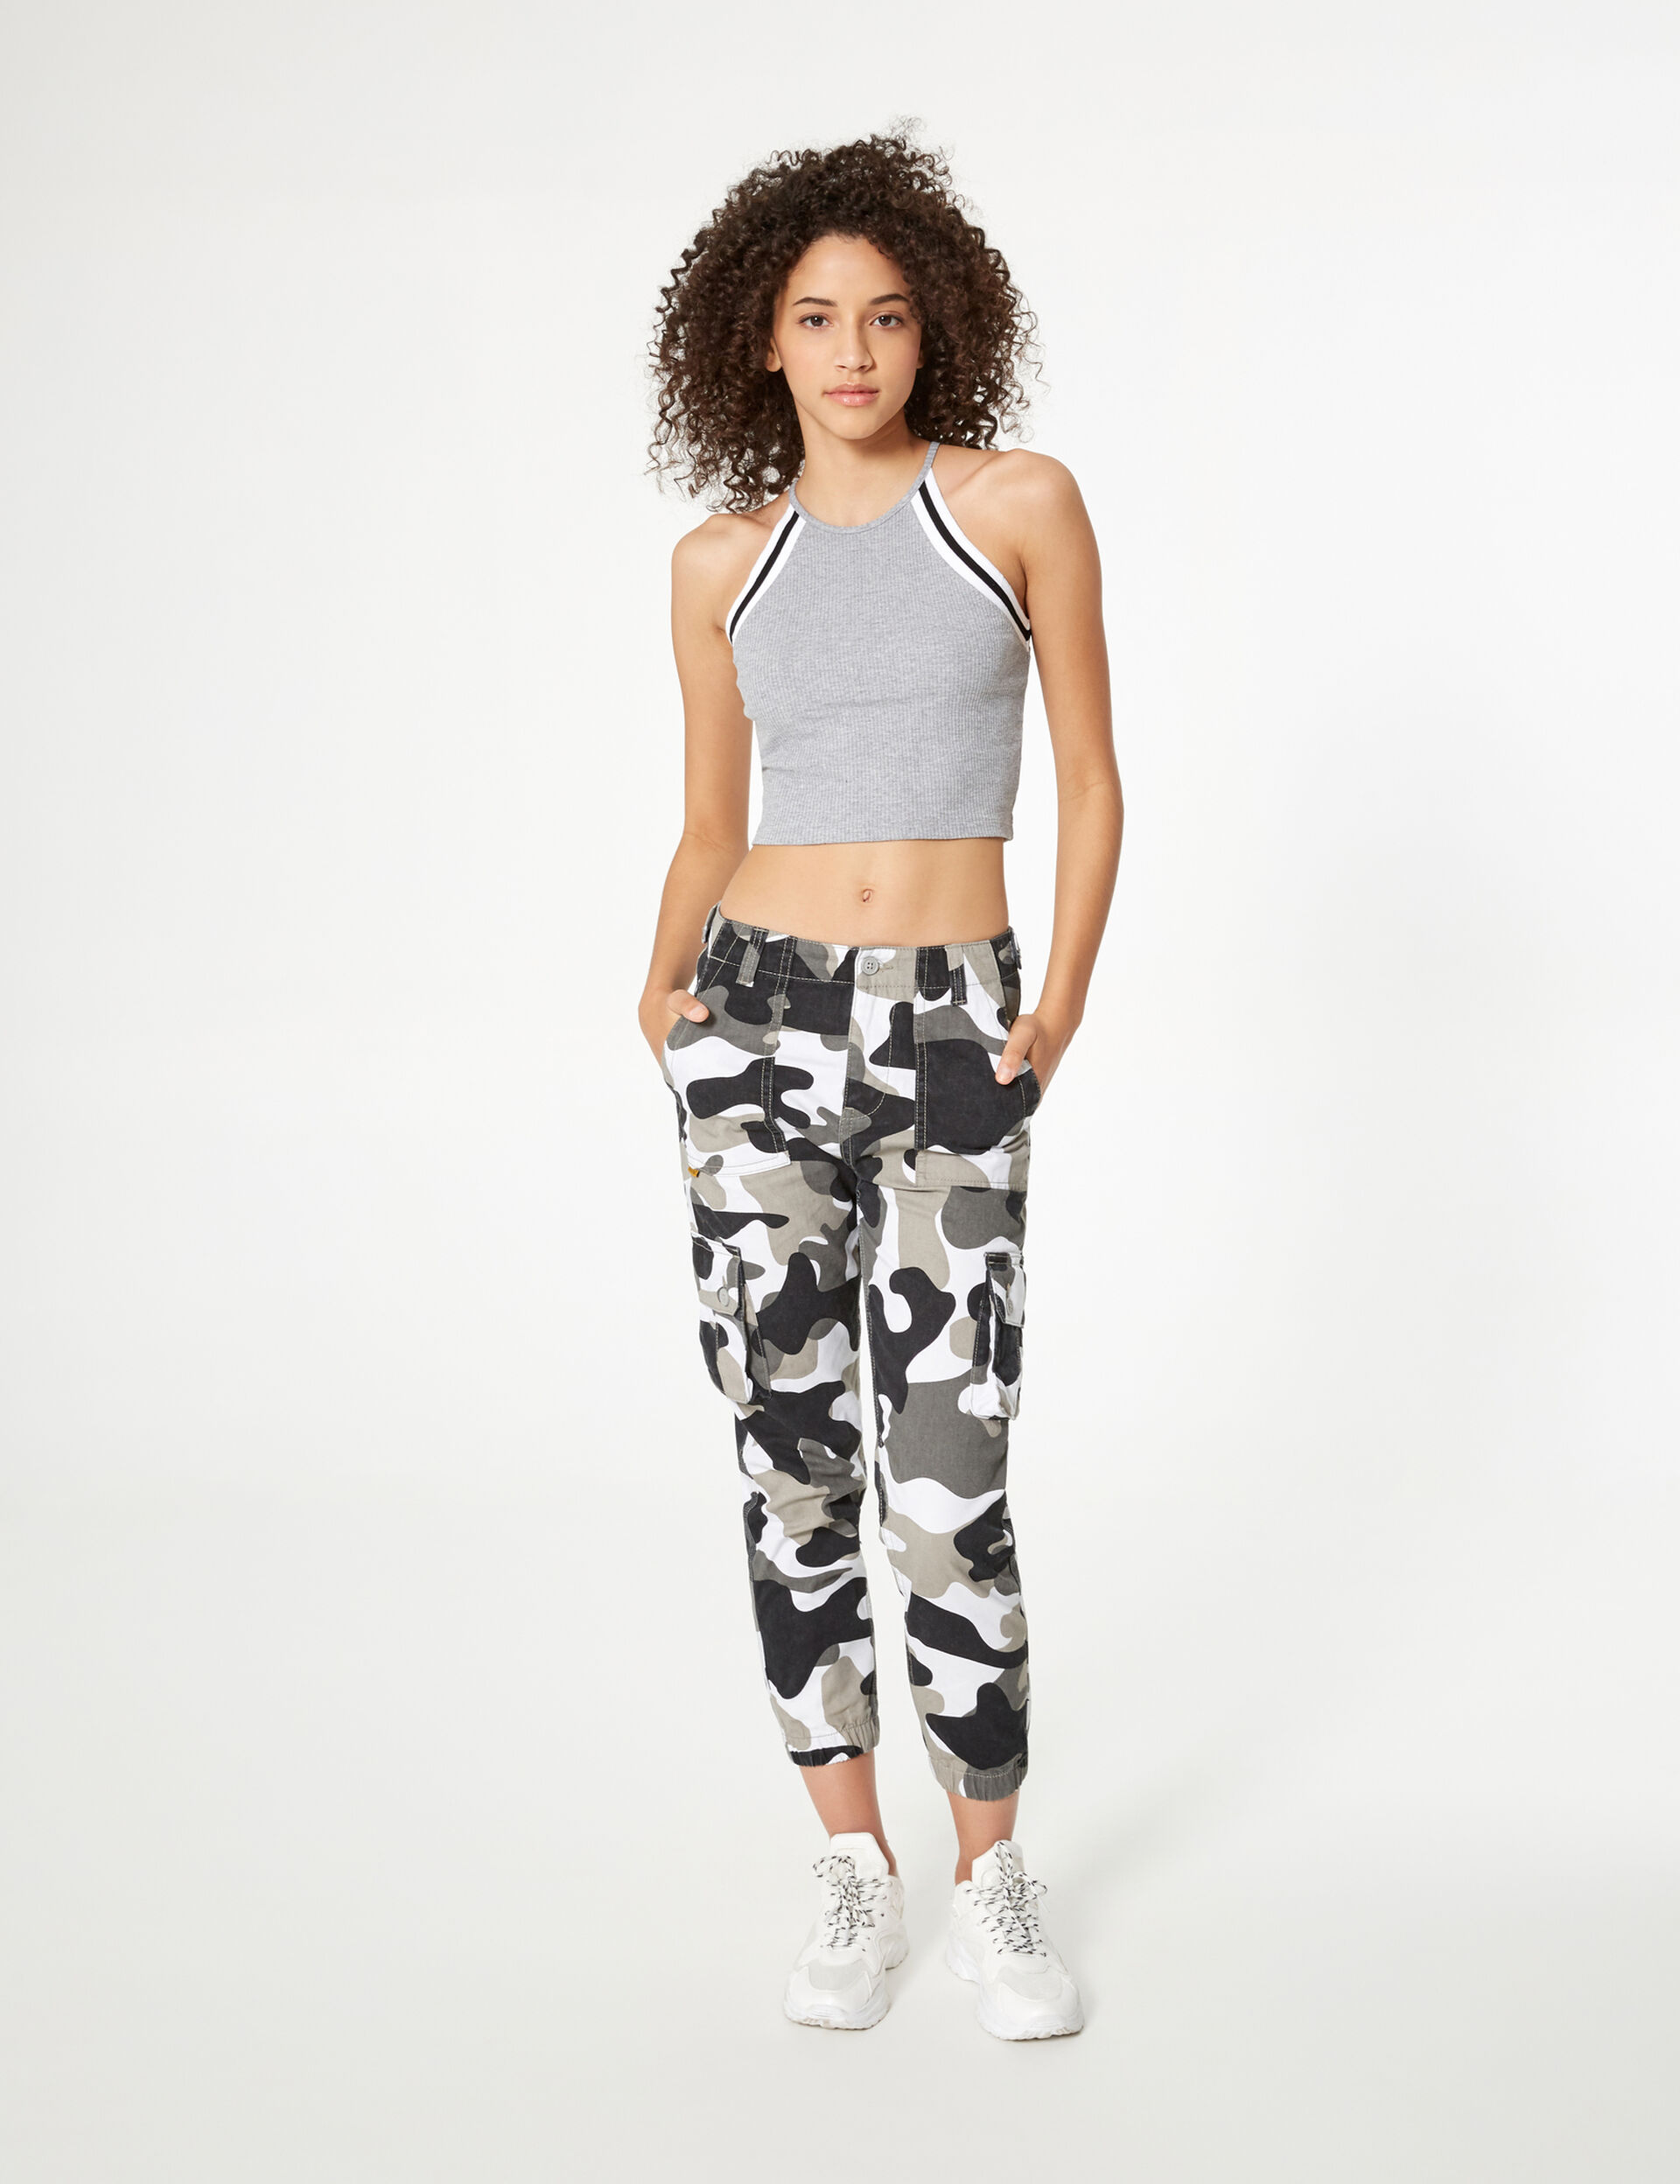 Grey, white and black ribbed crop top